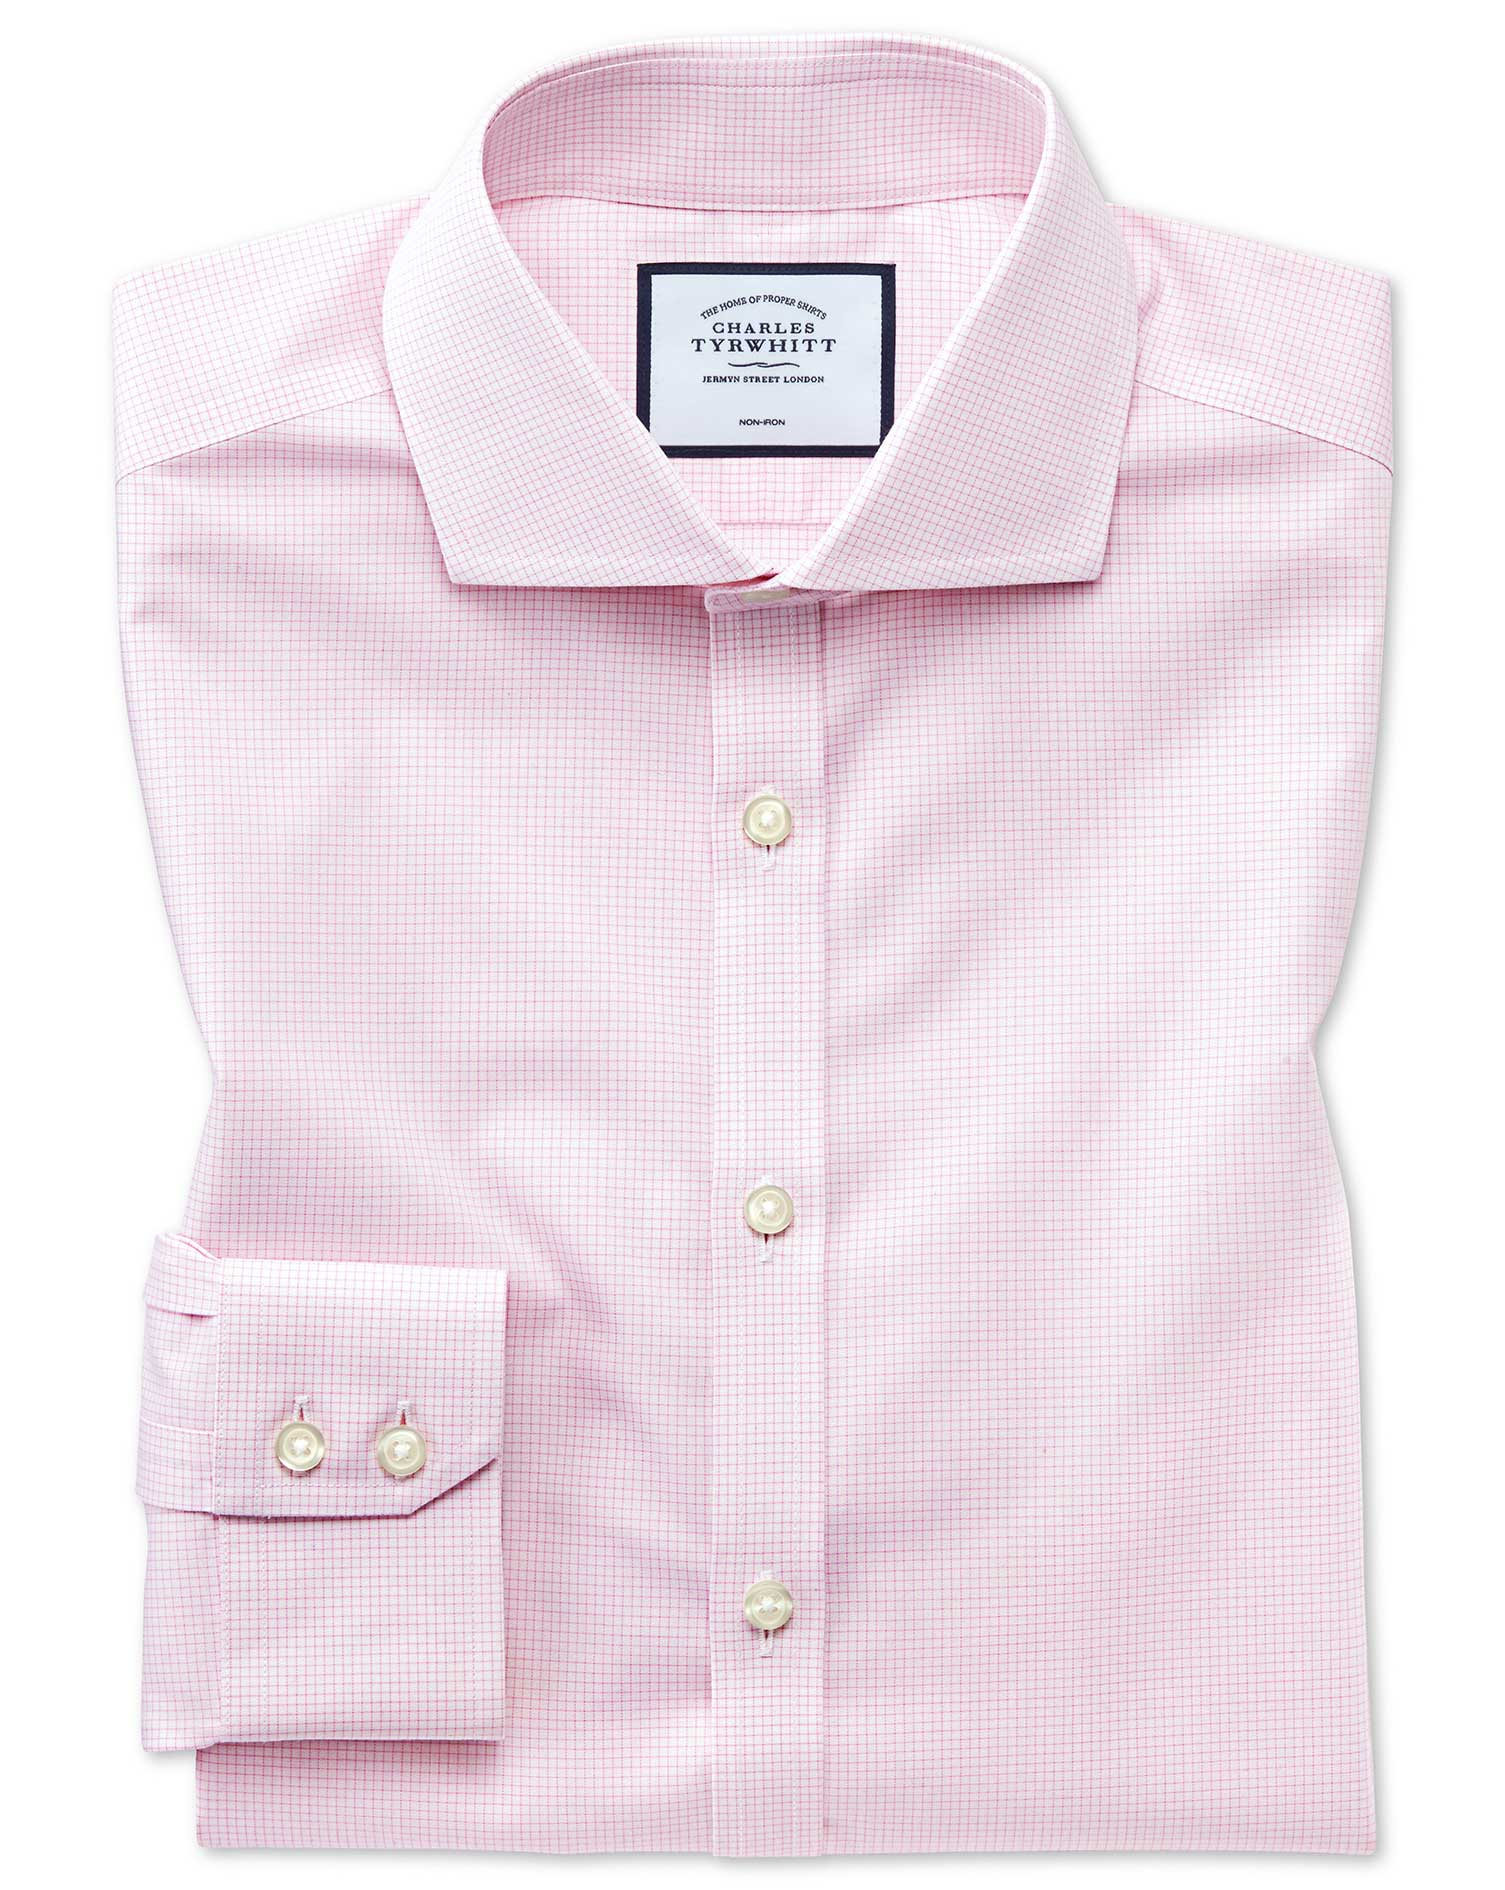 Extra Slim Fit Non-Iron 4-Way Stretch Pink Check Cotton Formal Shirt Single Cuff Size 15.5/34 by Cha